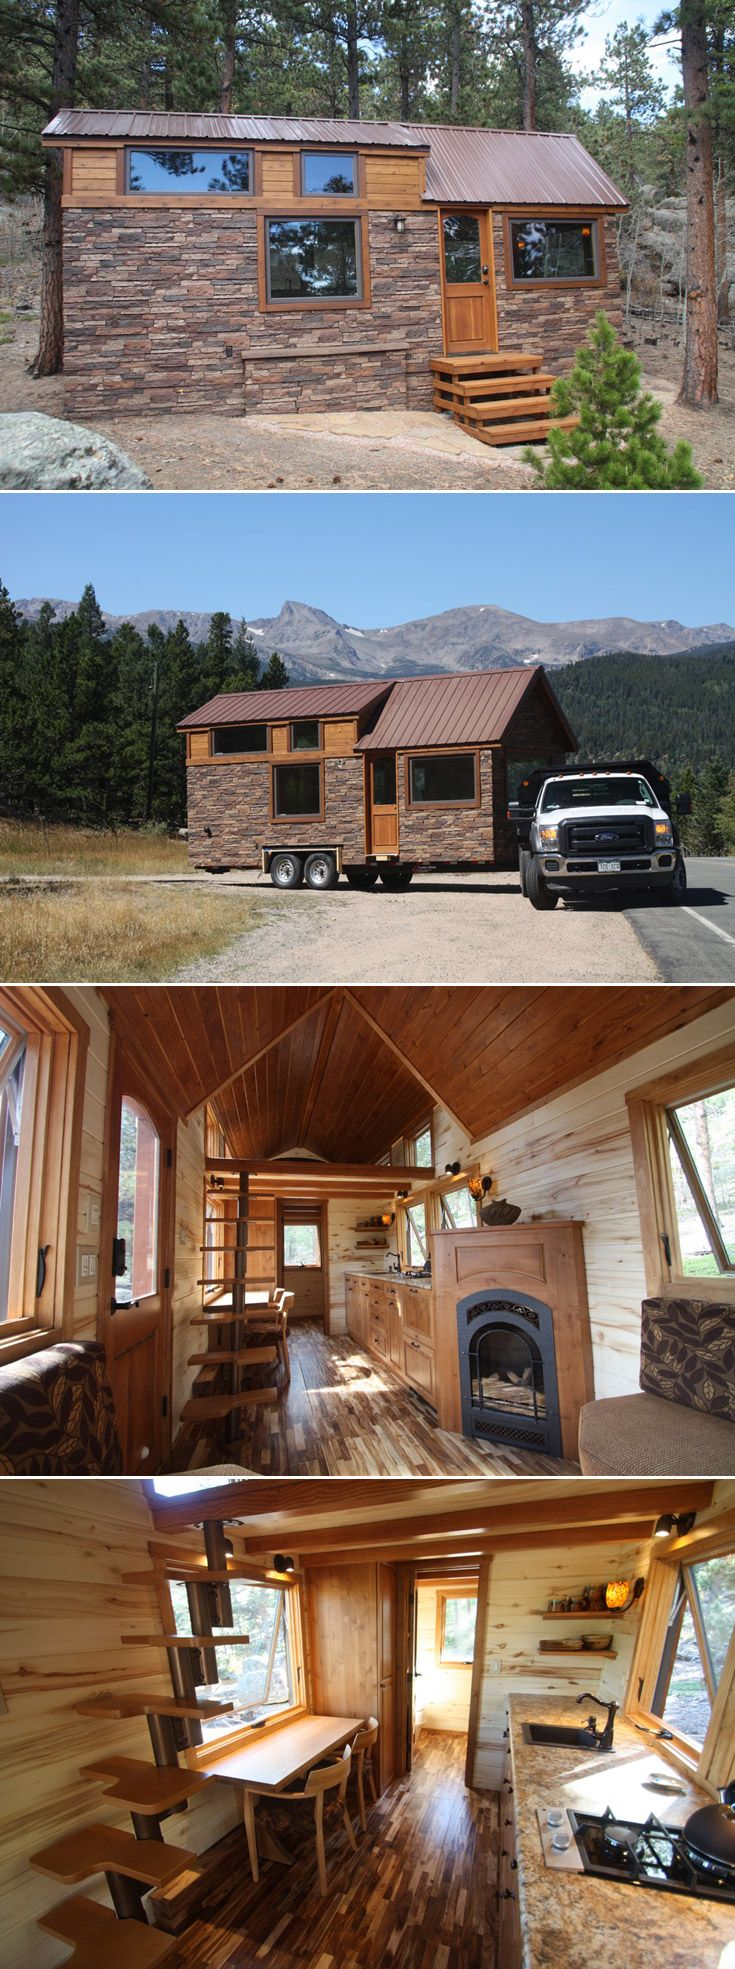 Best Ideas About Inside Tiny Houses On Pinterest Small House - Interiors of tiny houses